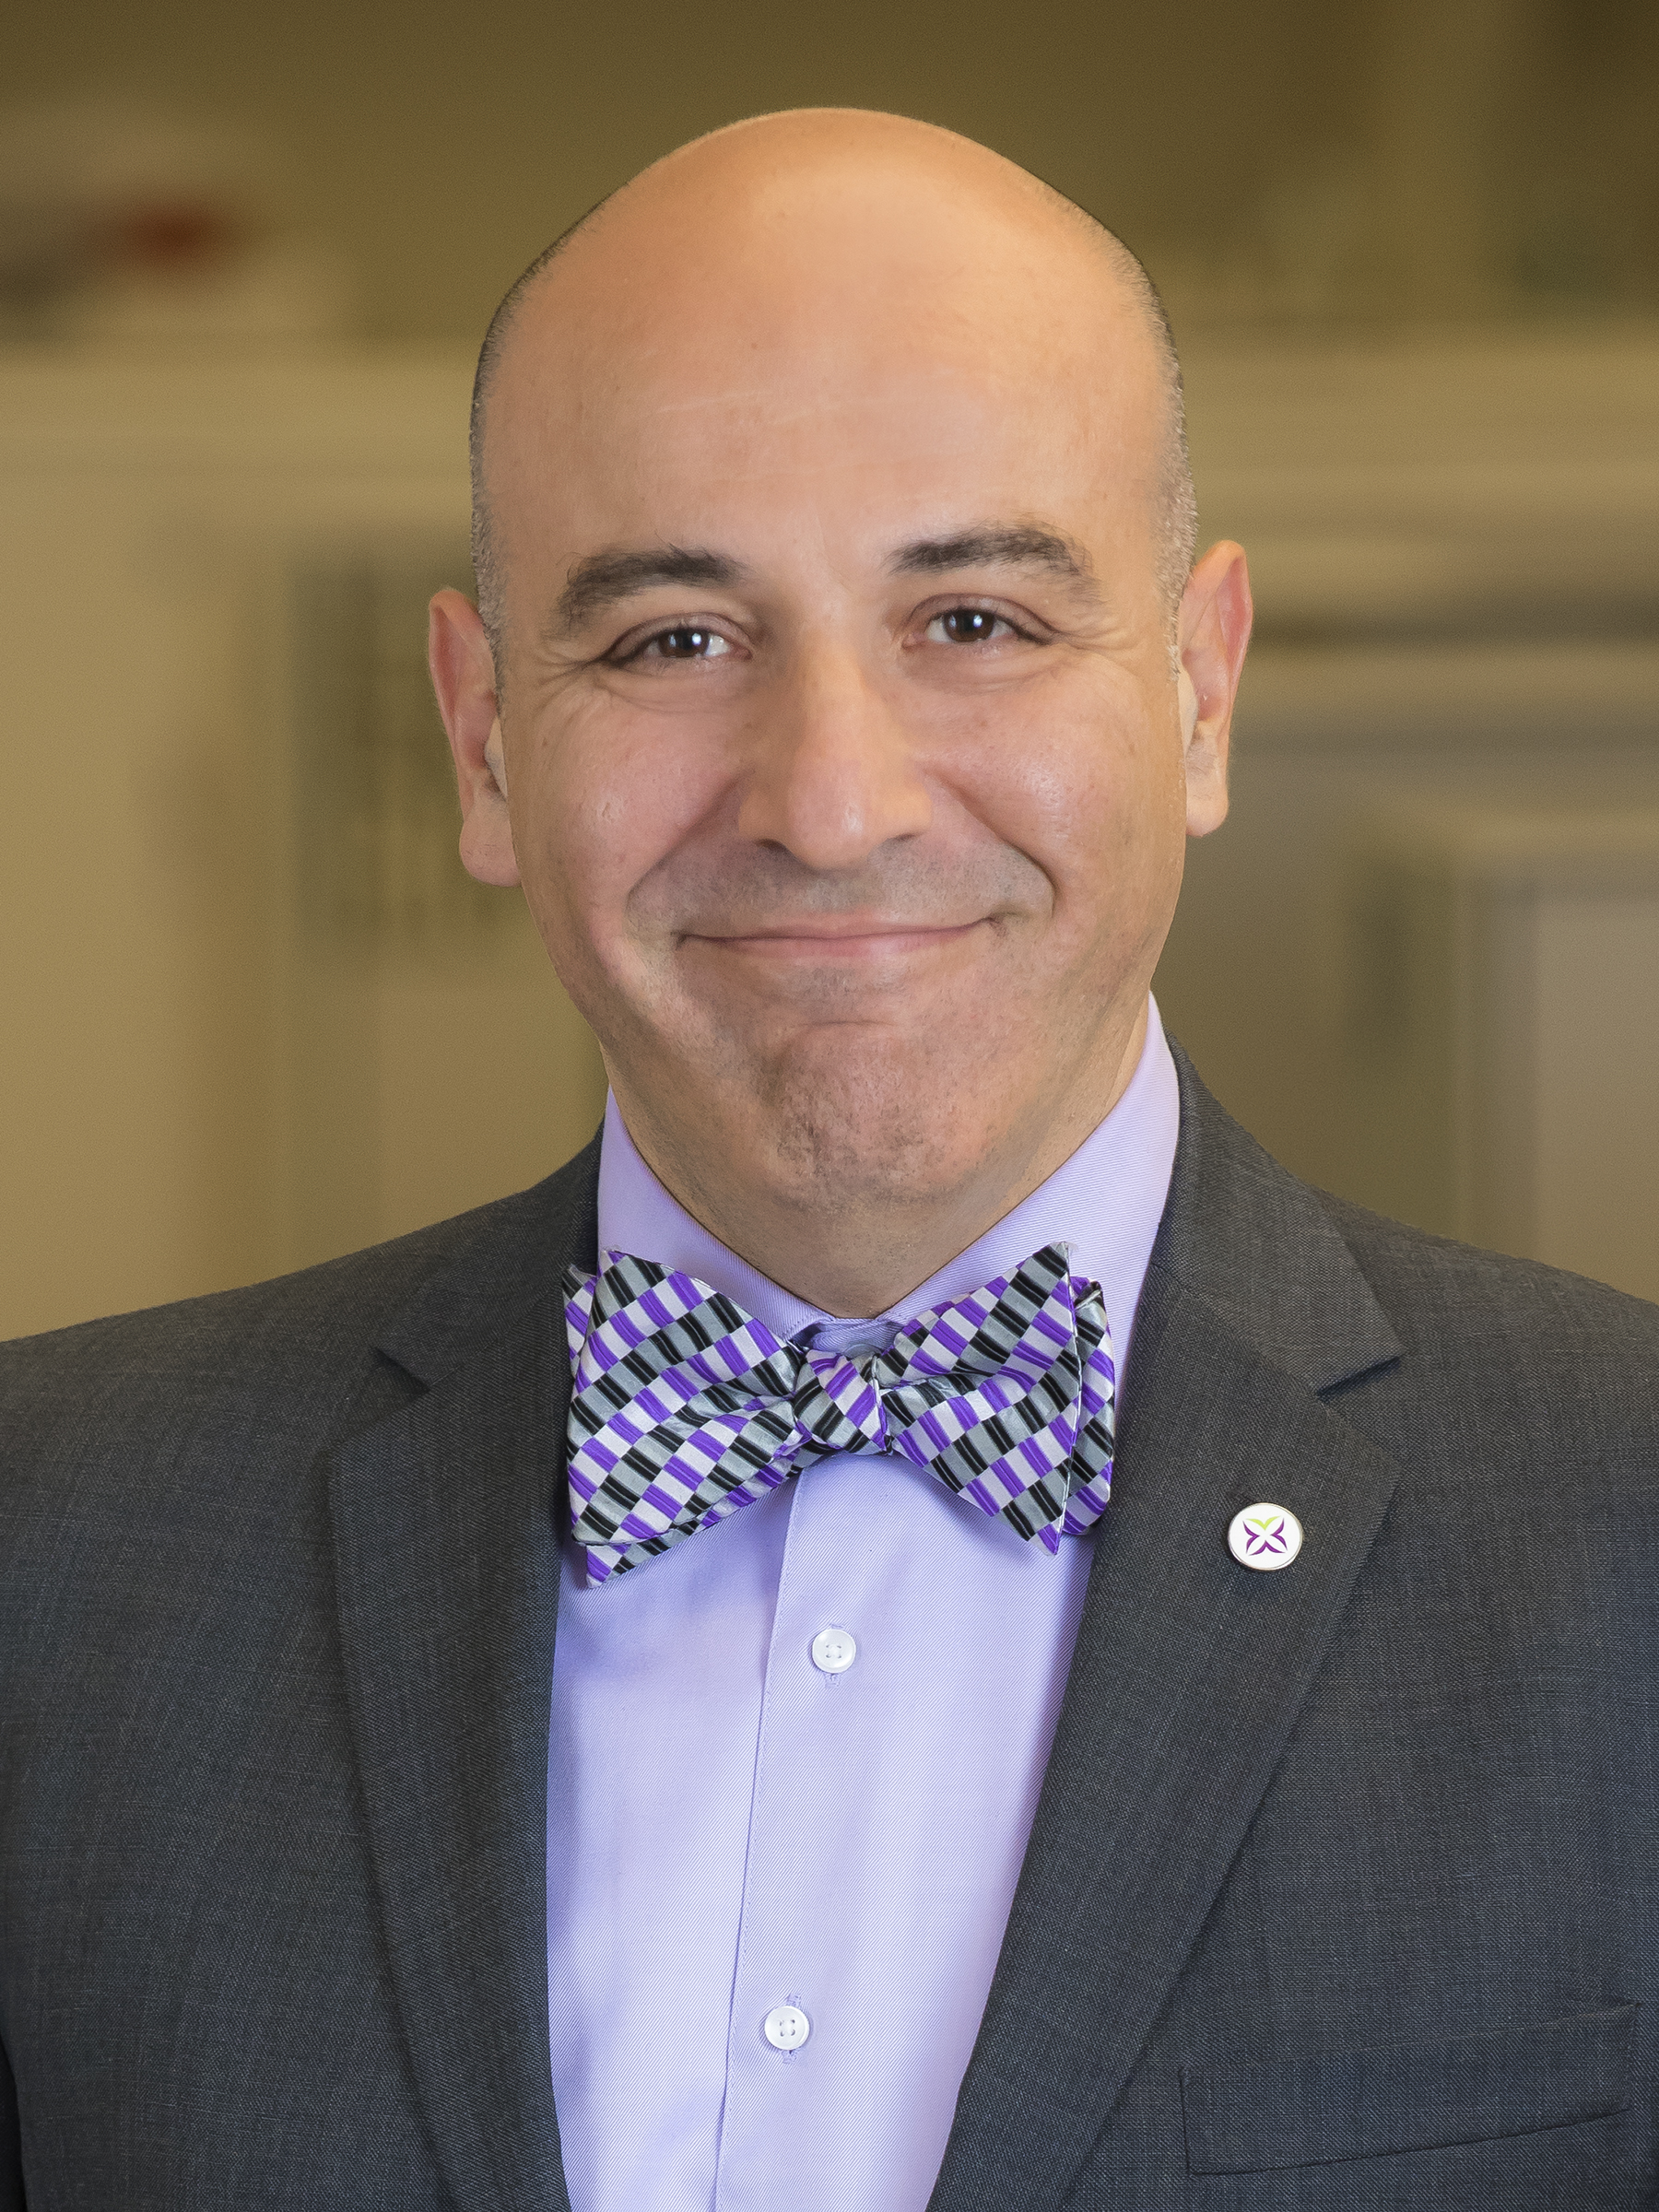 Mouhanad Hammami, M.D., M.H.S.A.